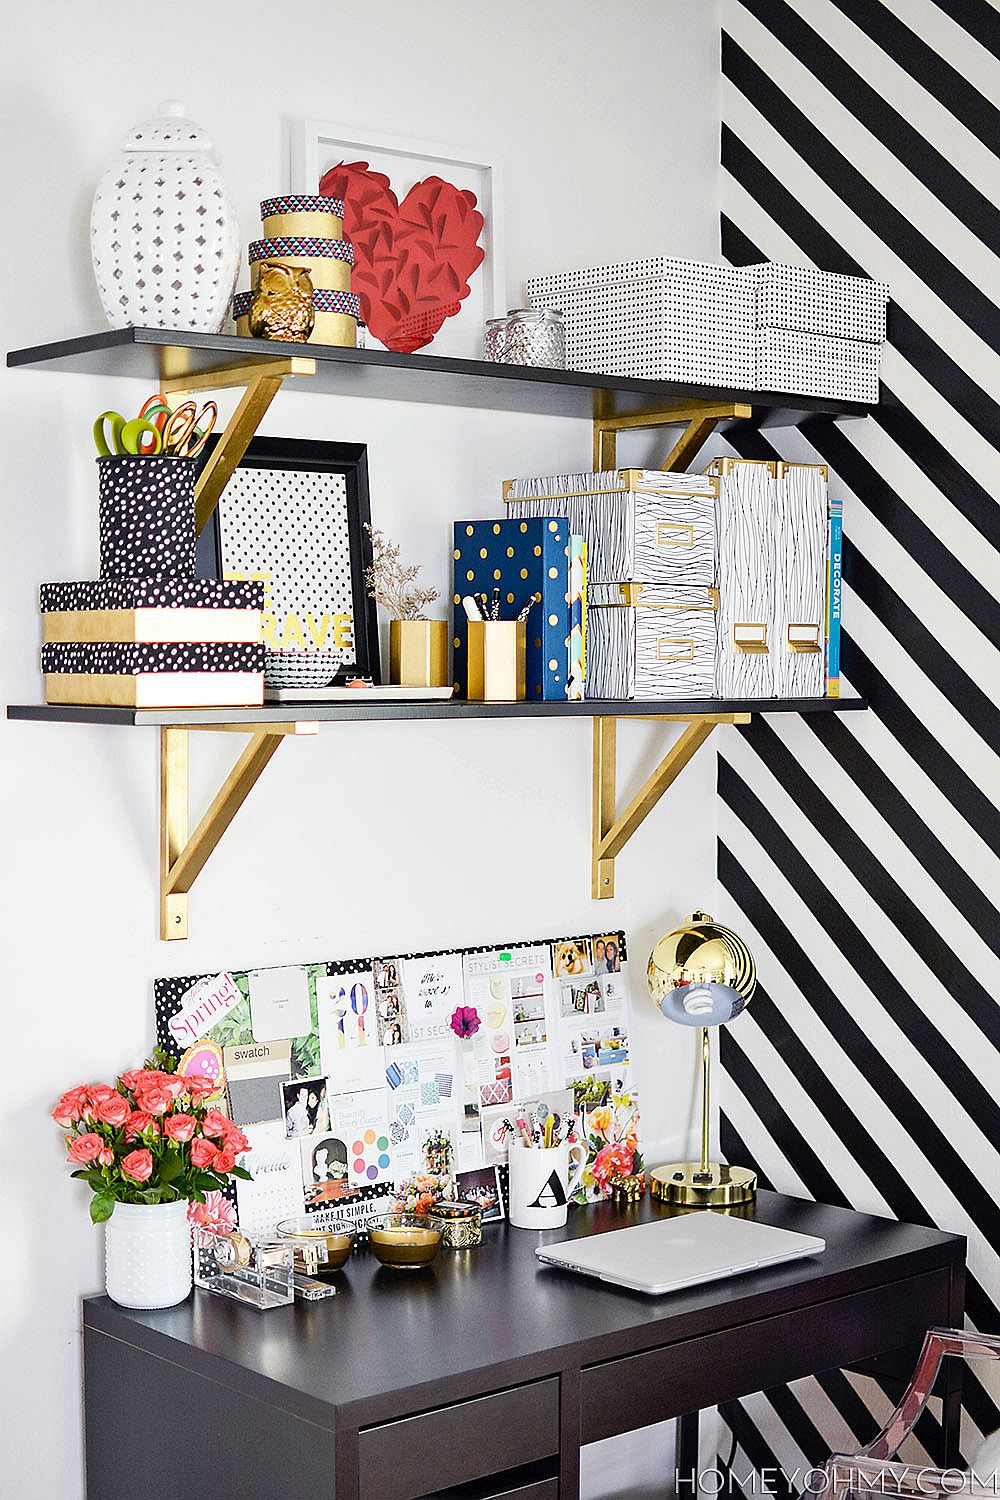 15 Diy Home Office Organization And Storage Ideas That